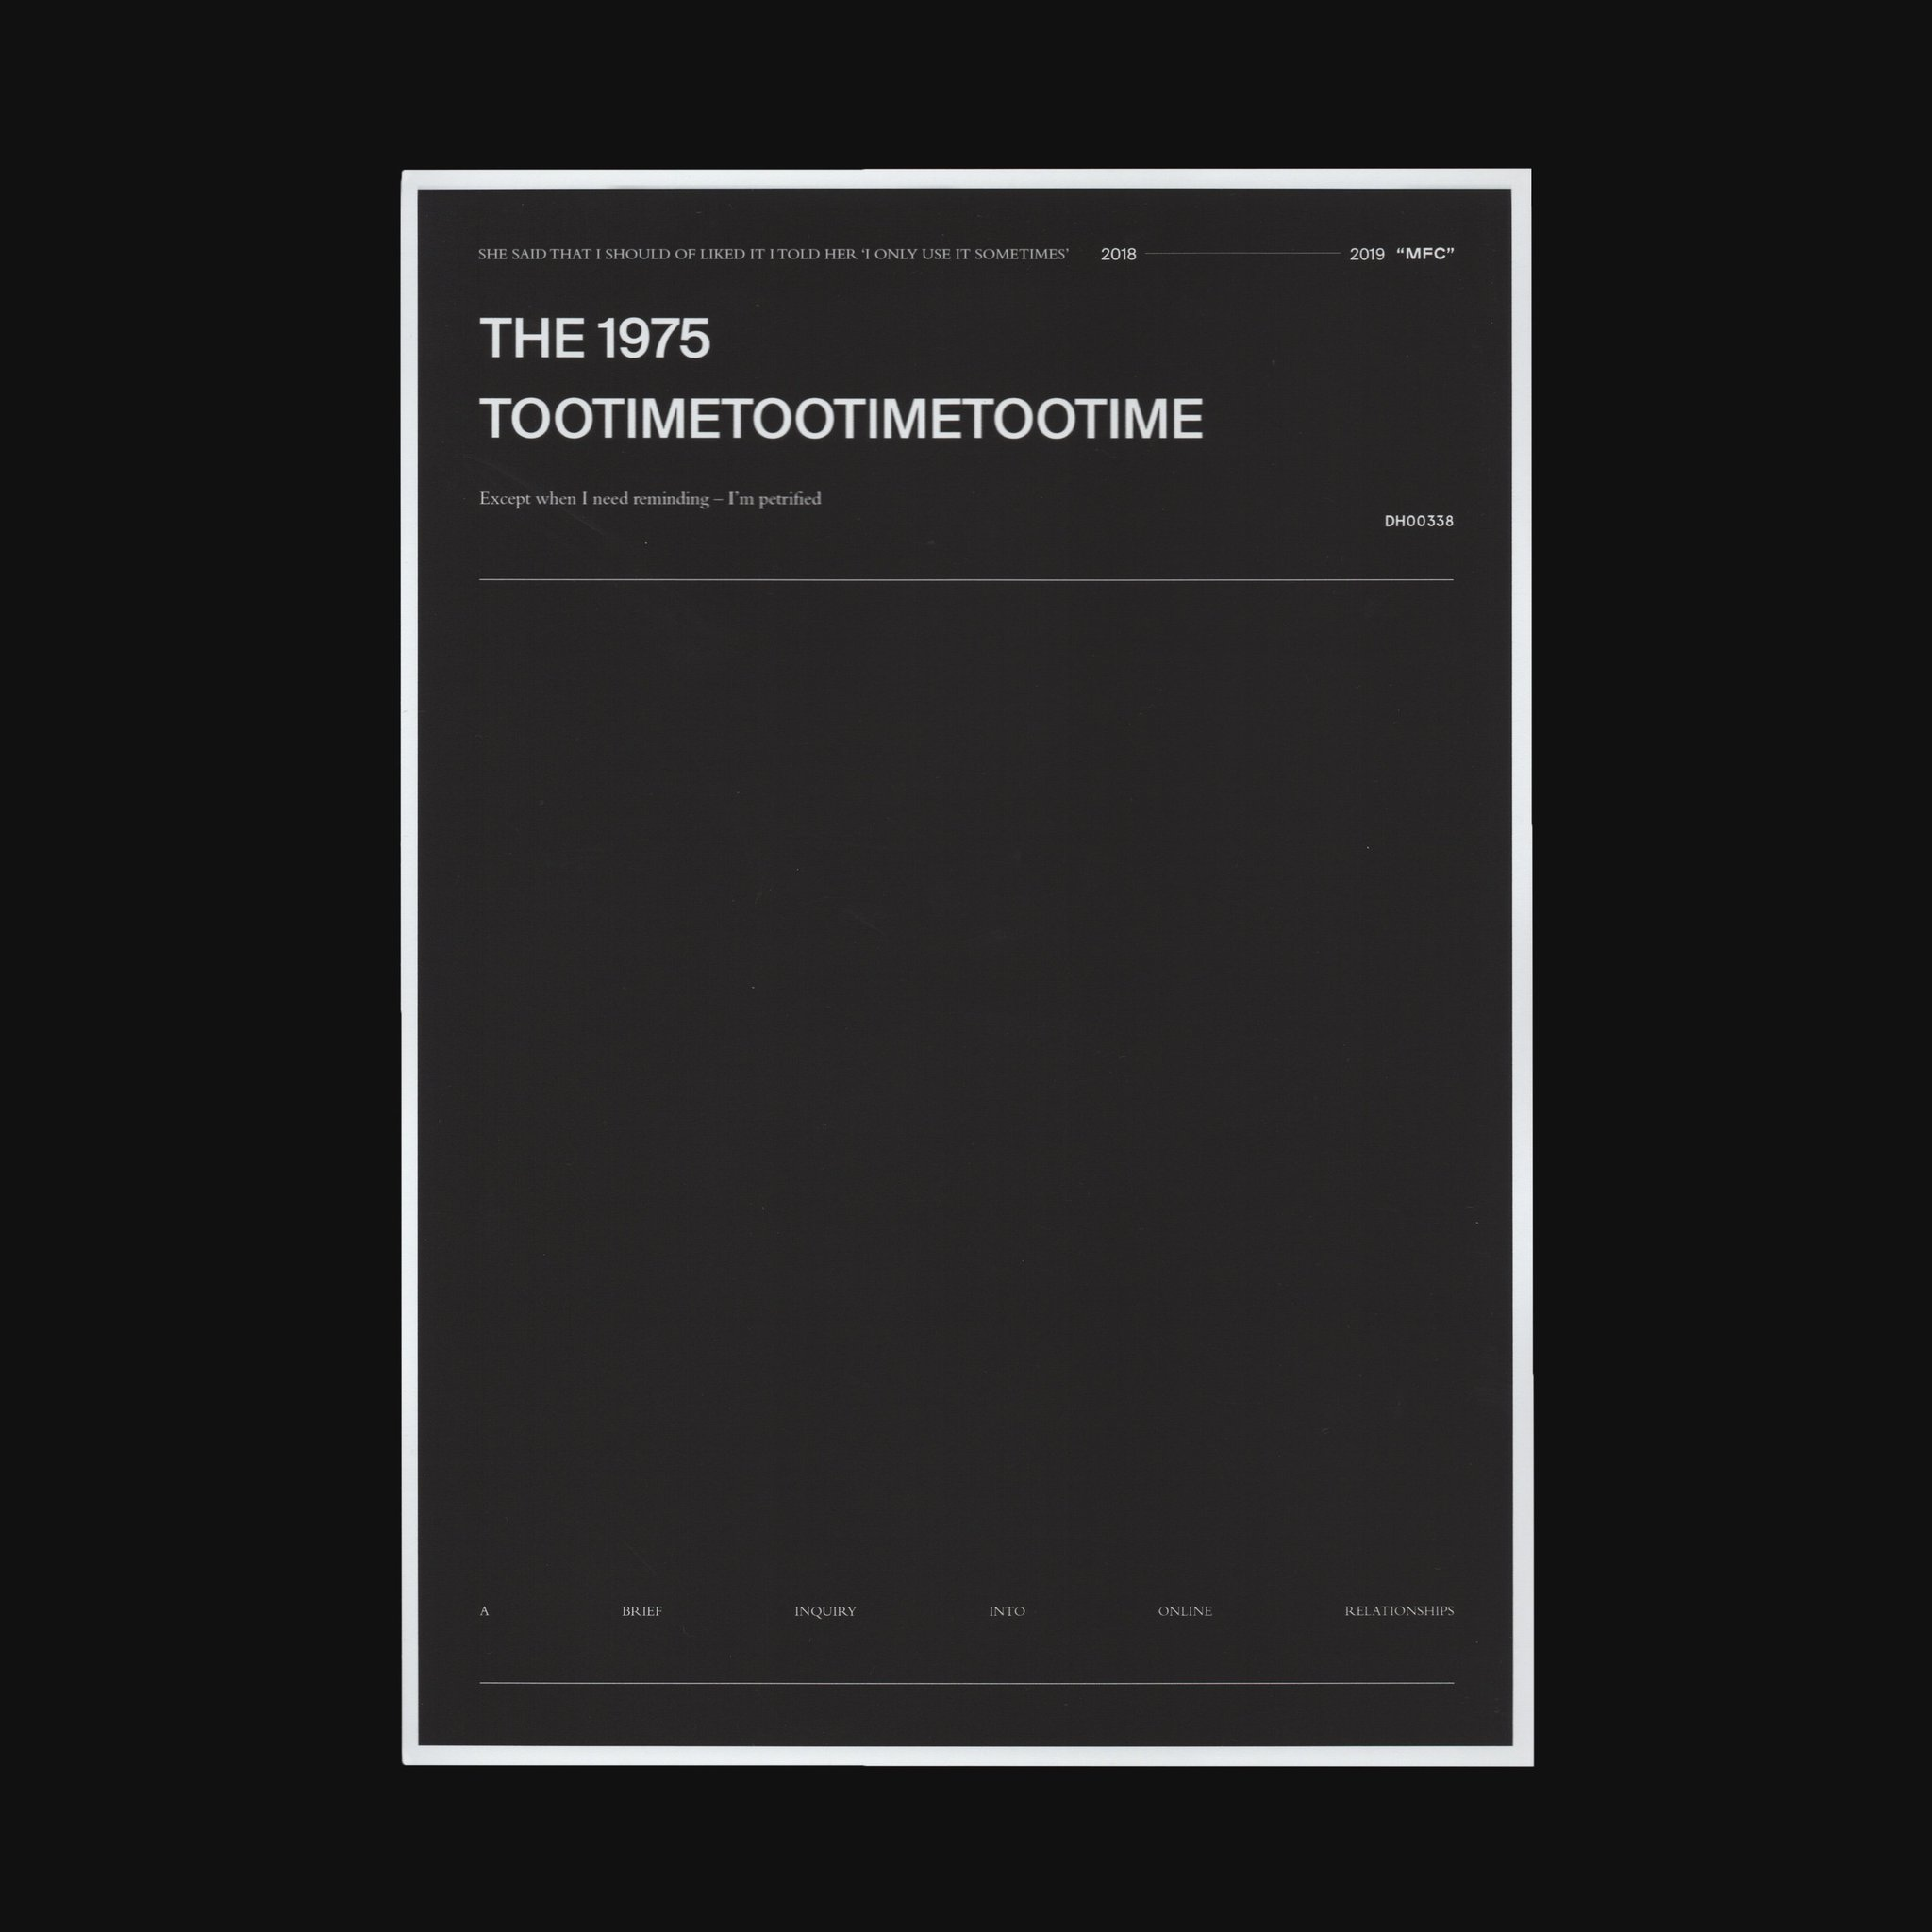 //T O O T I M E T O O T I M E T O O T I M E // @AppleMusic L O V E https://t.co/kqz1vBIUBC https://t.co/0W4CG99JPM